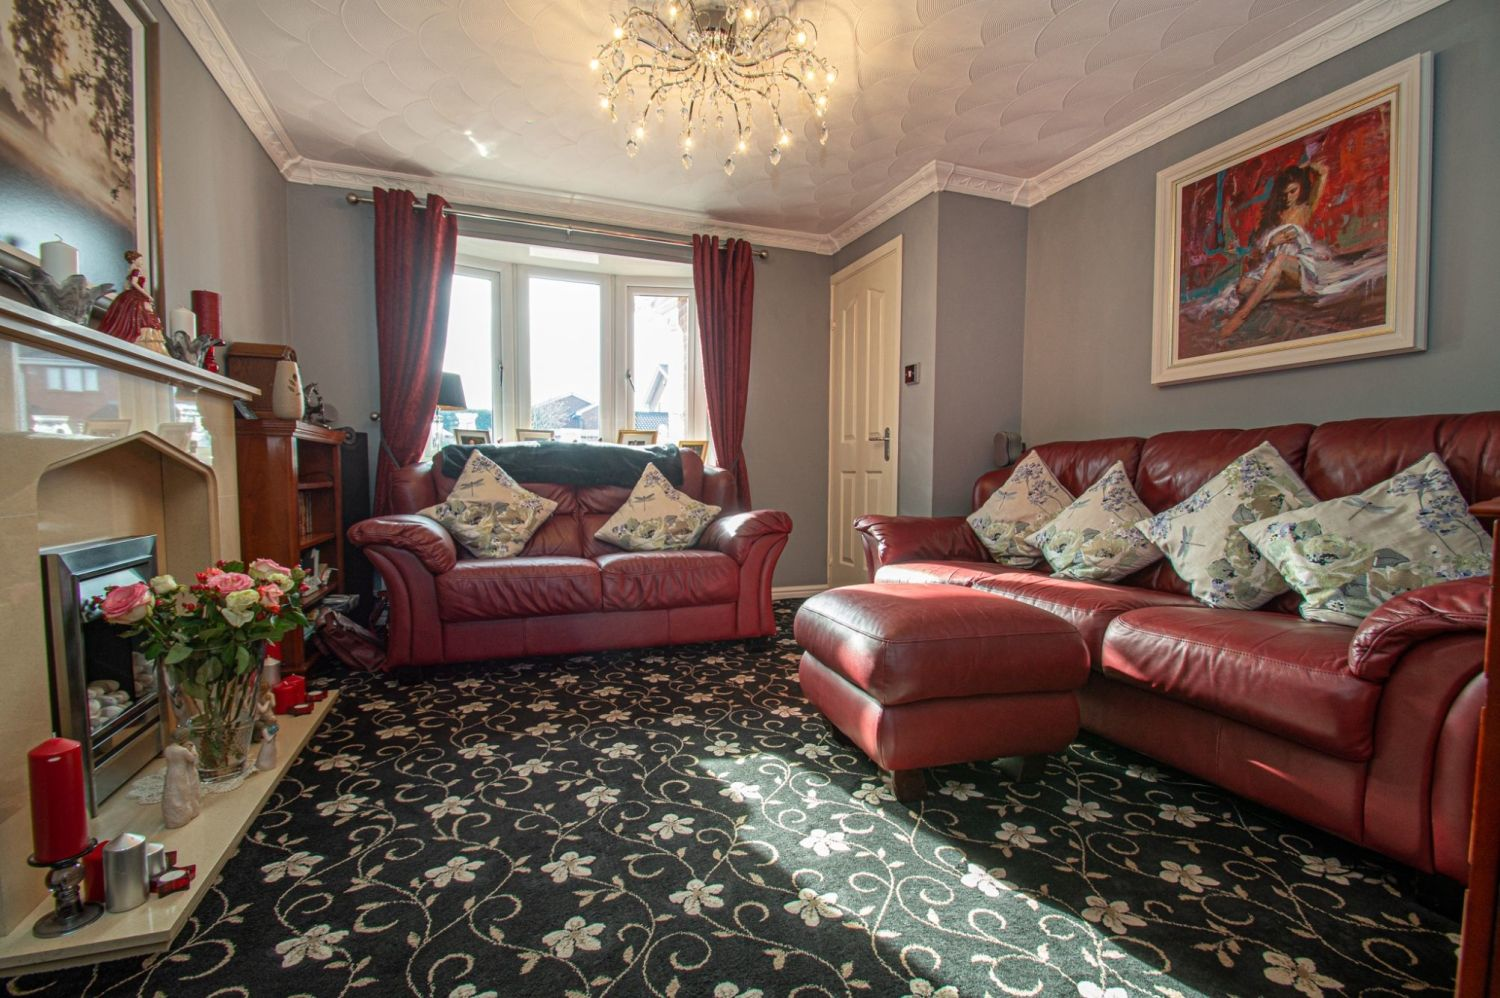 3 bed detached for sale in Broomehill Close, Brierley Hill  - Property Image 2